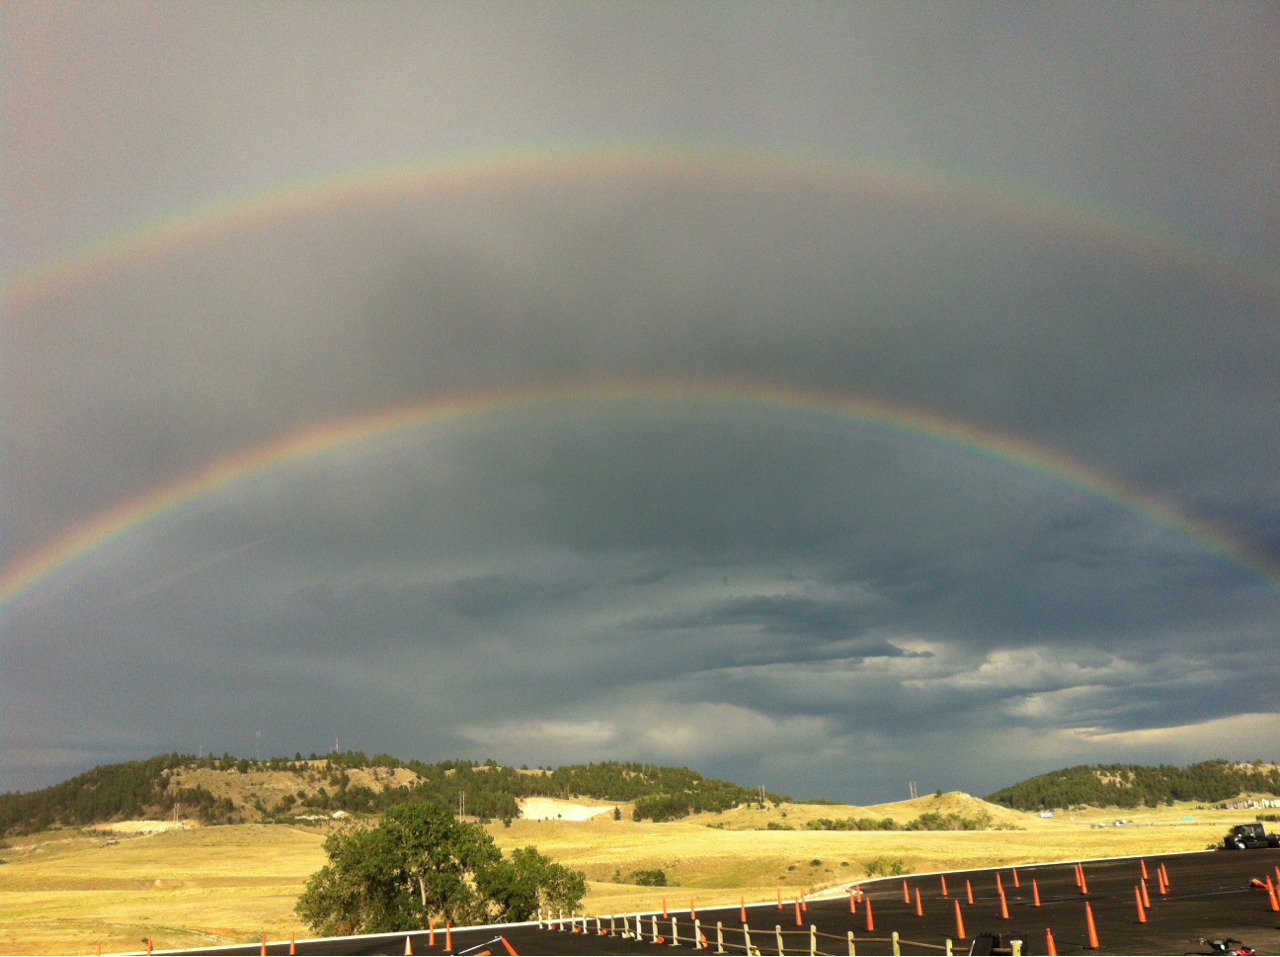 Double rainbow in South Dakota.